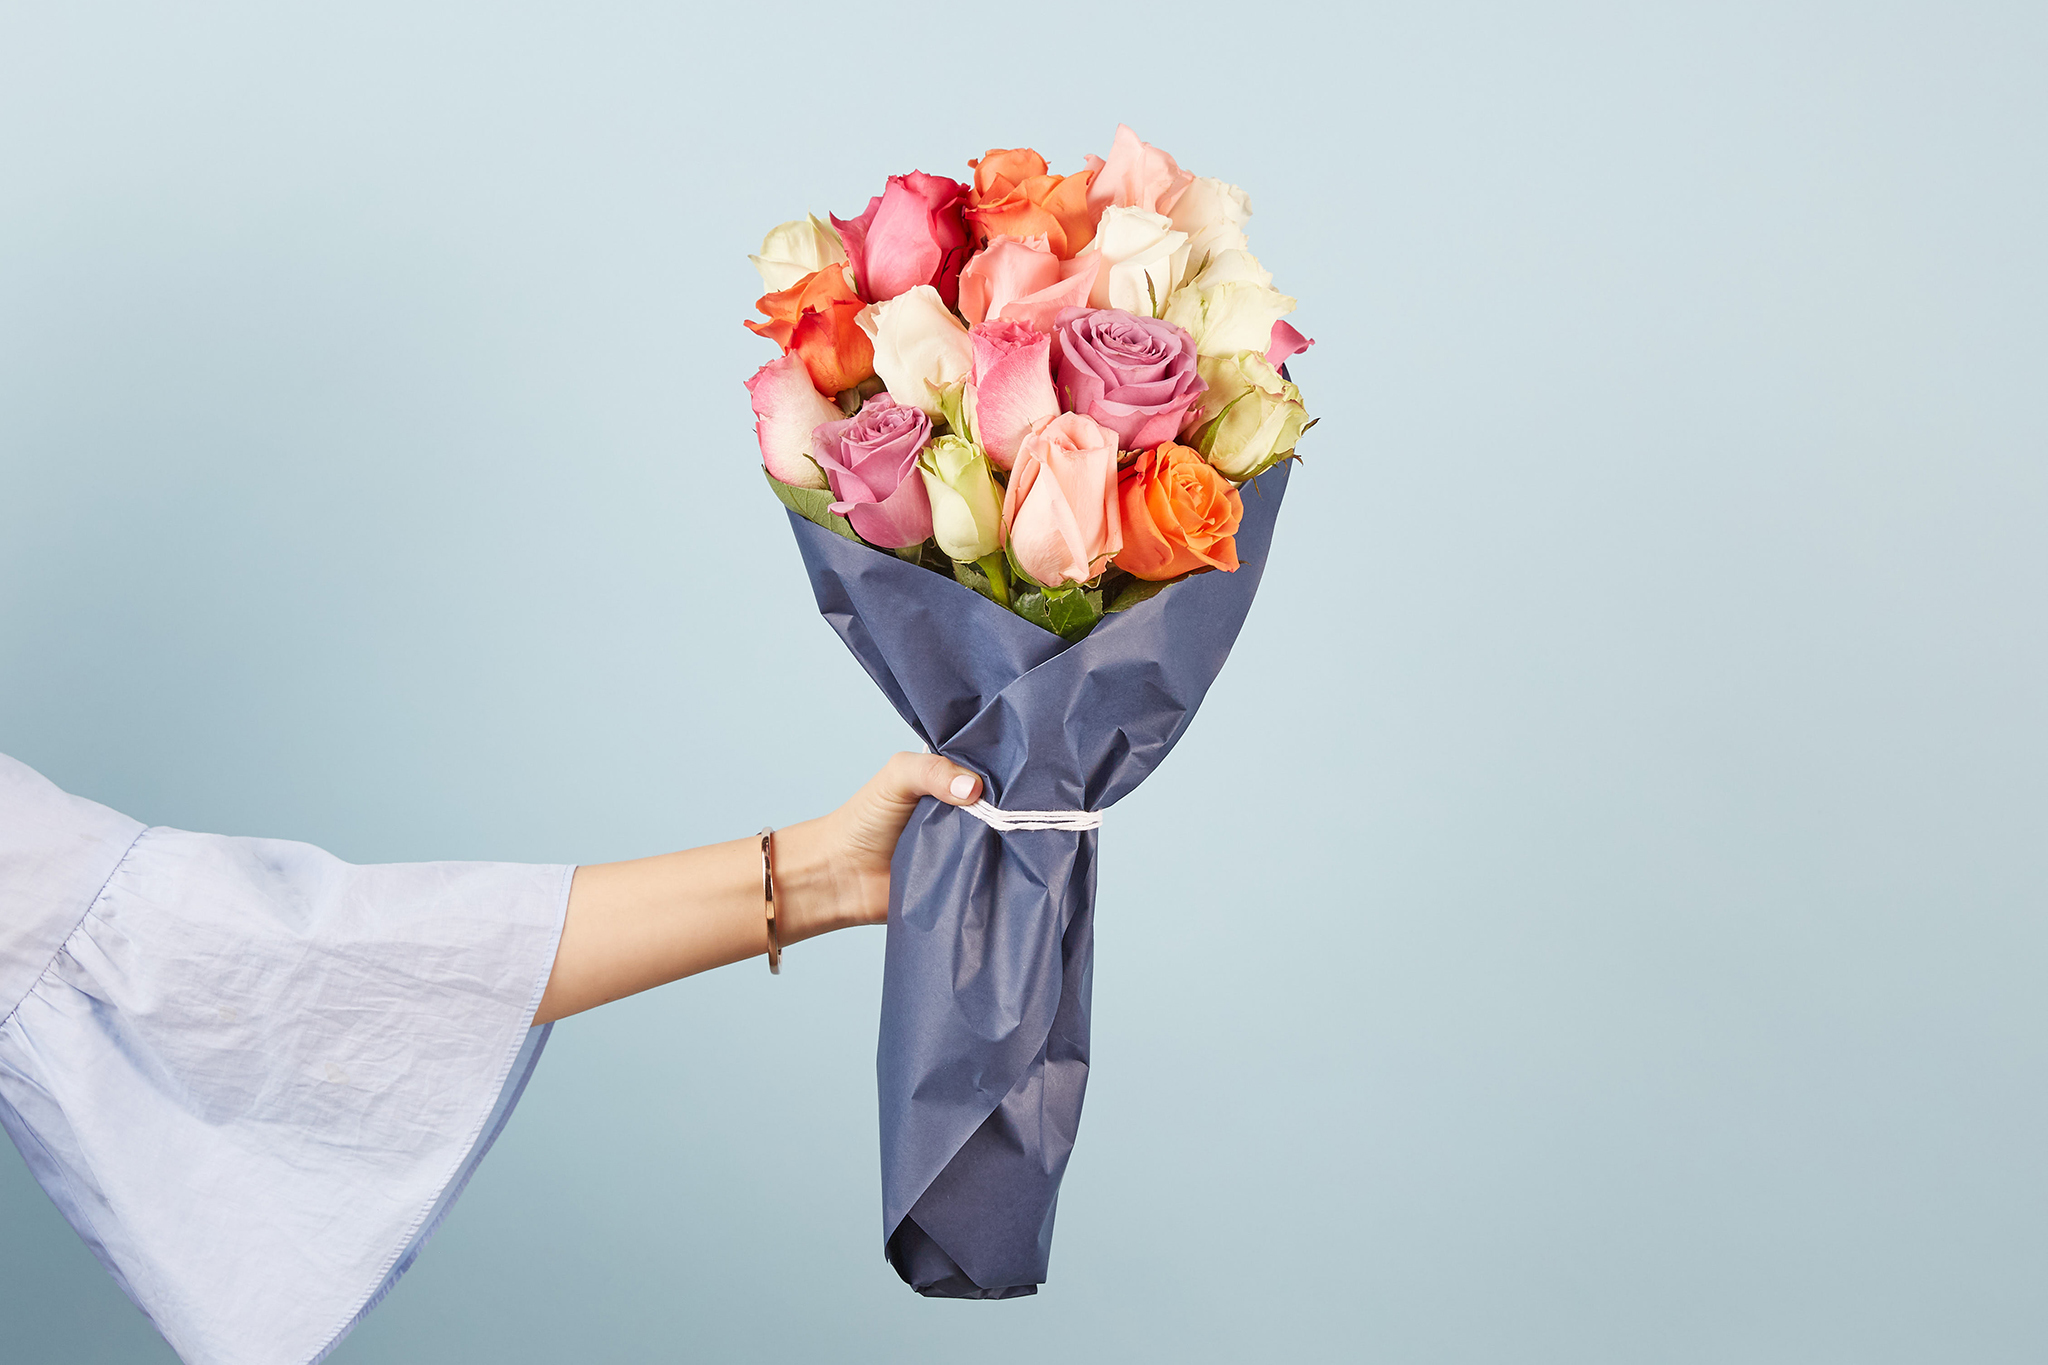 The best options for flower delivery in Los Angeles